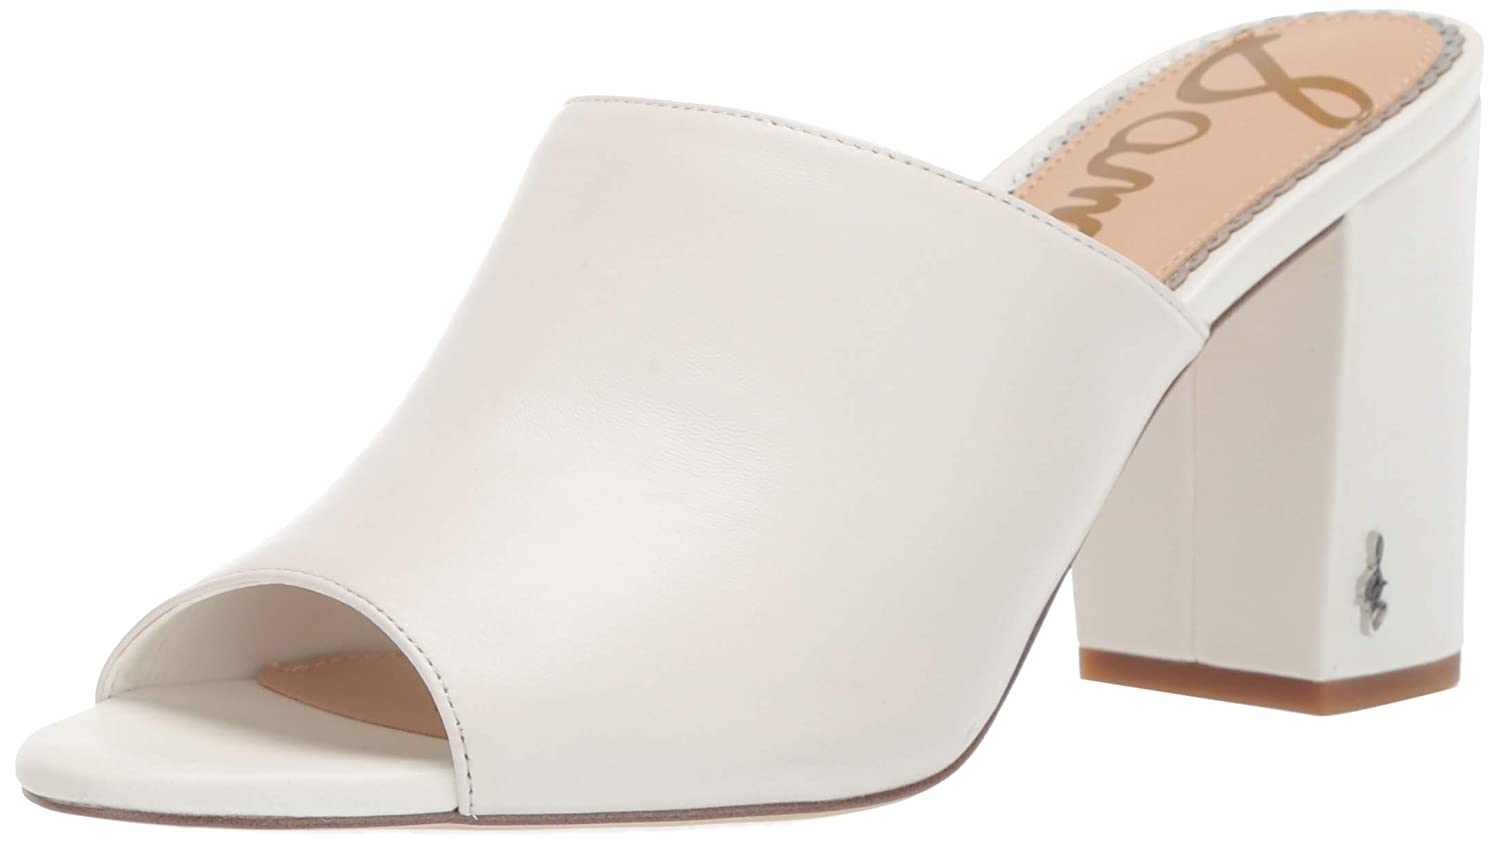 Bright White Leather Sam Edelman Womens Orlie Heeled Sandal